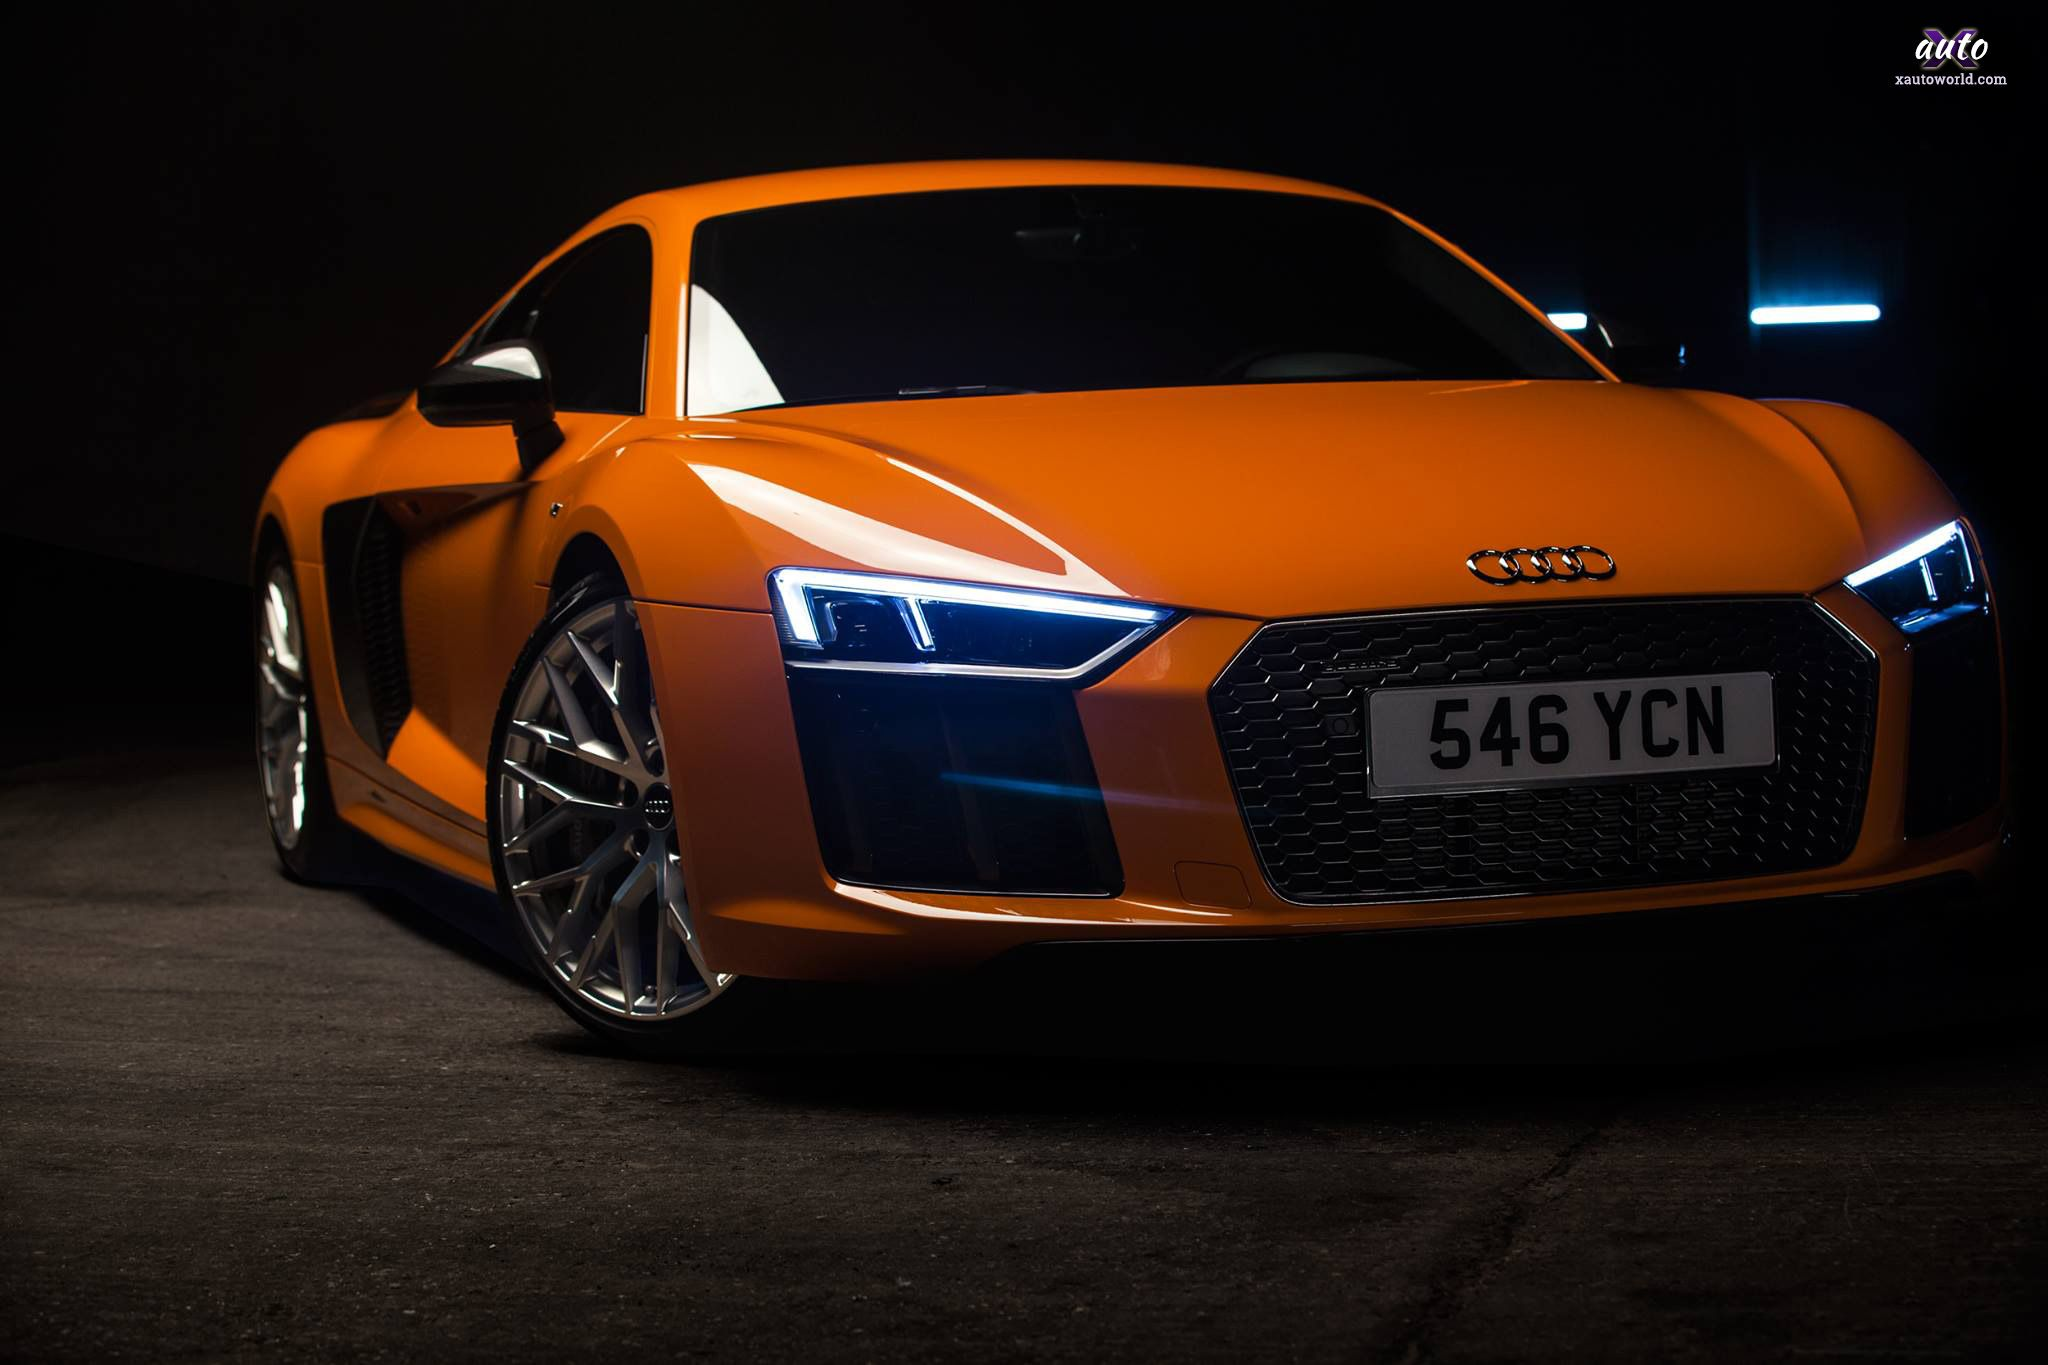 Audi R8 Orange Wallpapers Top Free Audi R8 Orange Backgrounds Wallpaperaccess